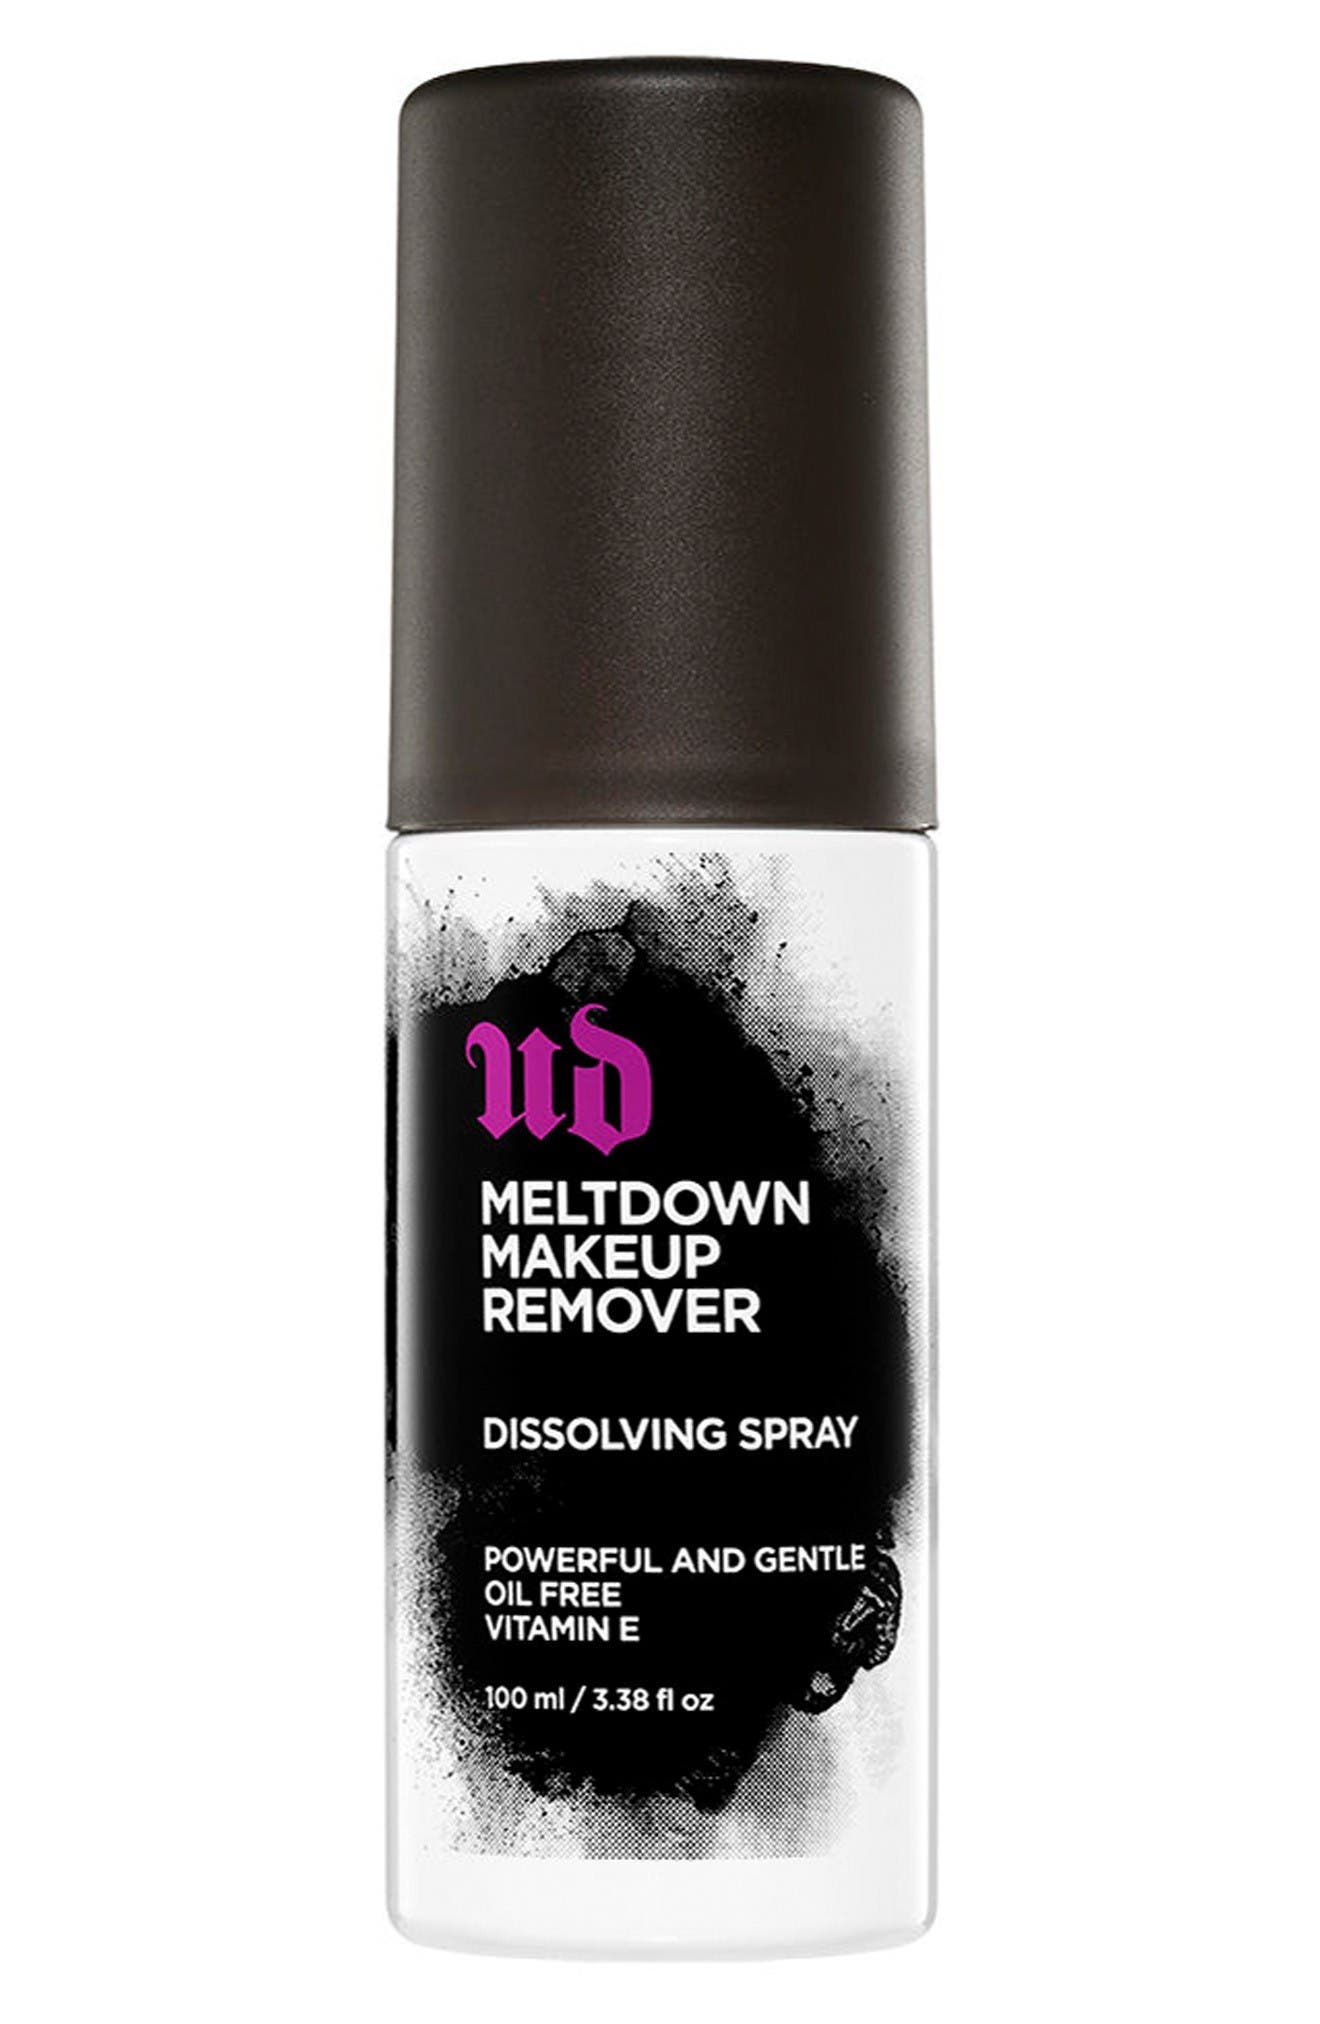 Urban Decay Makeup Remover Dissolving Spray